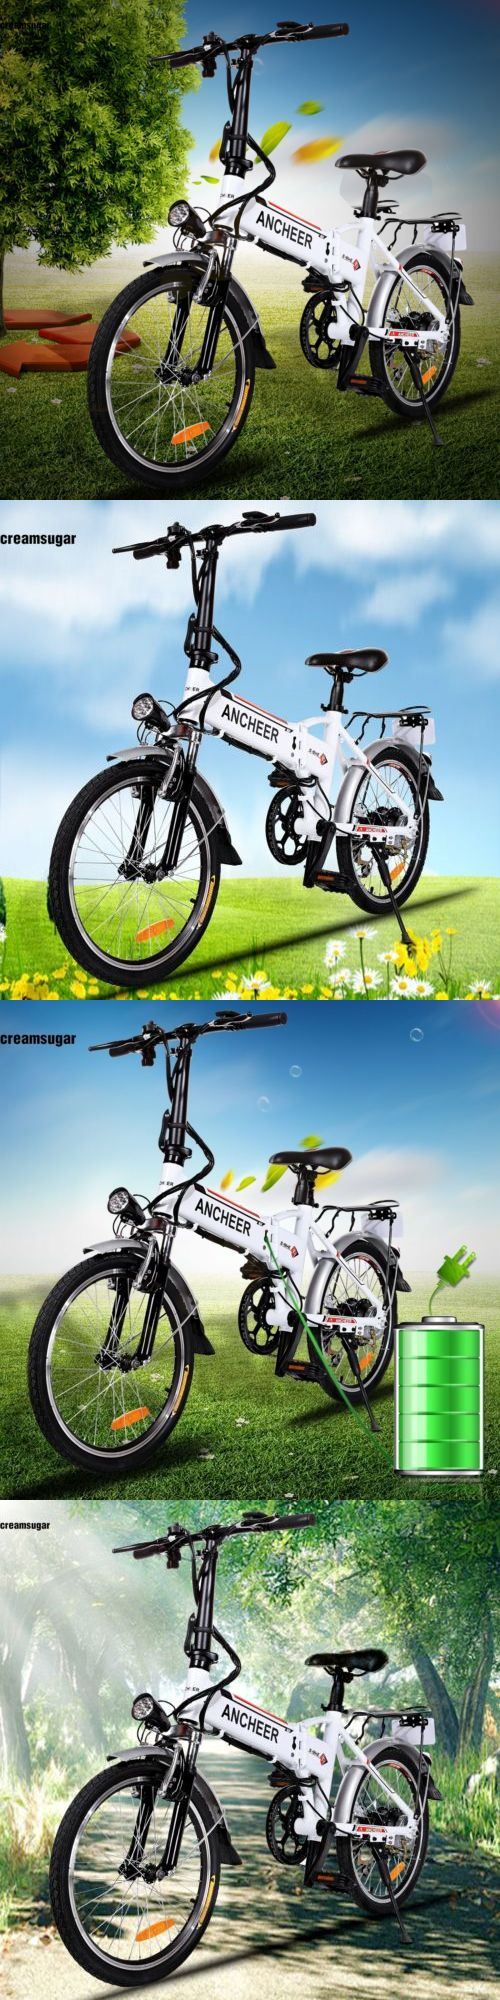 Electric Bicycles 74469: 18.7 Aluminum Alloy Frame Folding Mountain Bike Cycling Bicycle Popular# BUY IT NOW ONLY: $493.04